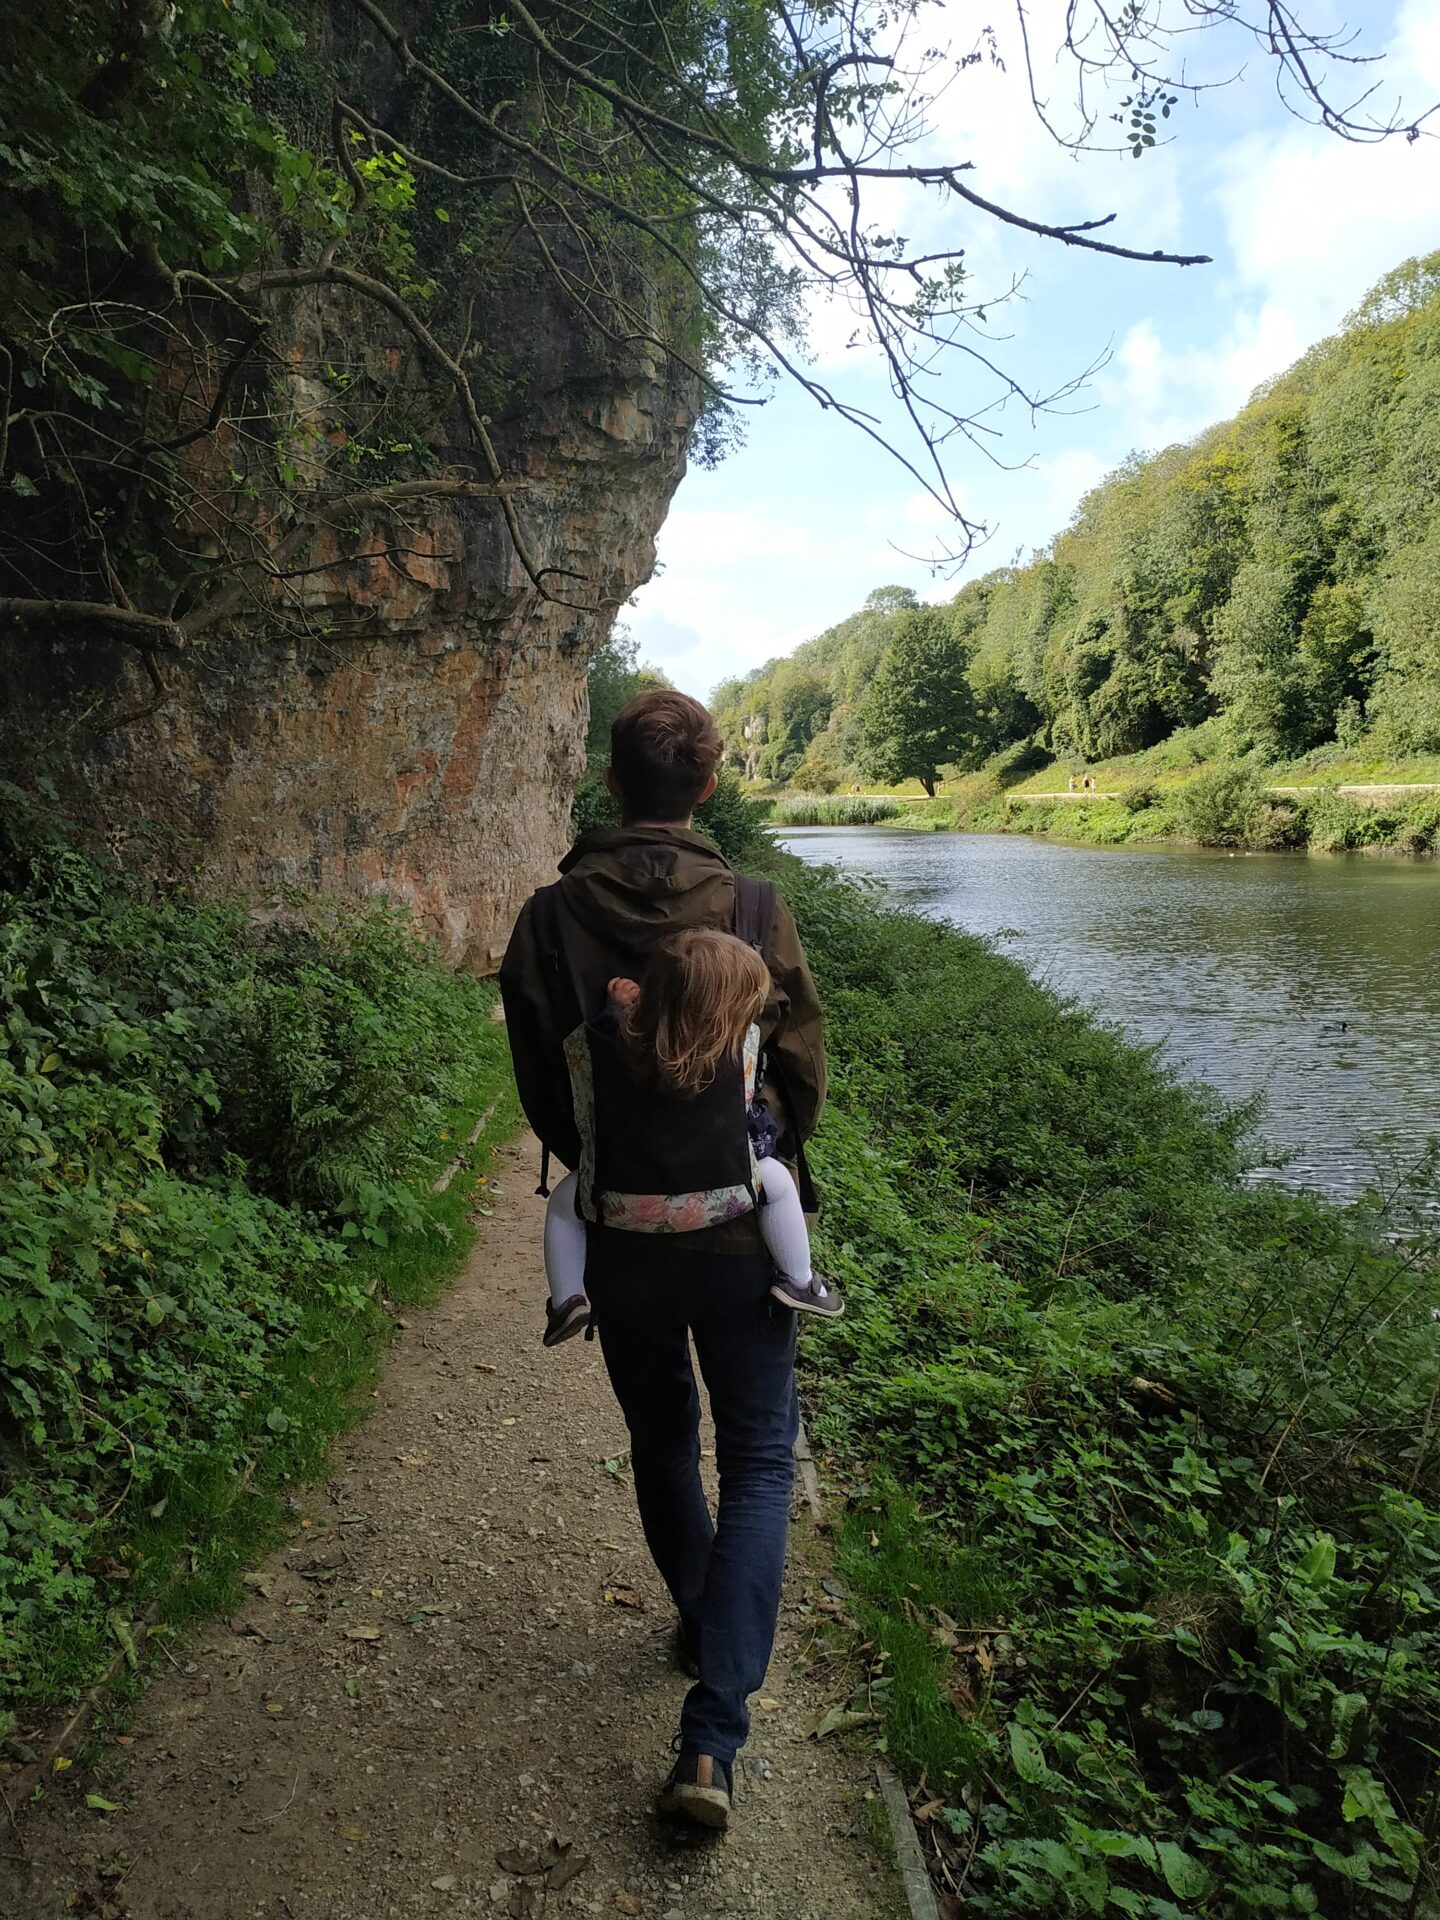 Creswell Crags - a museum like no other